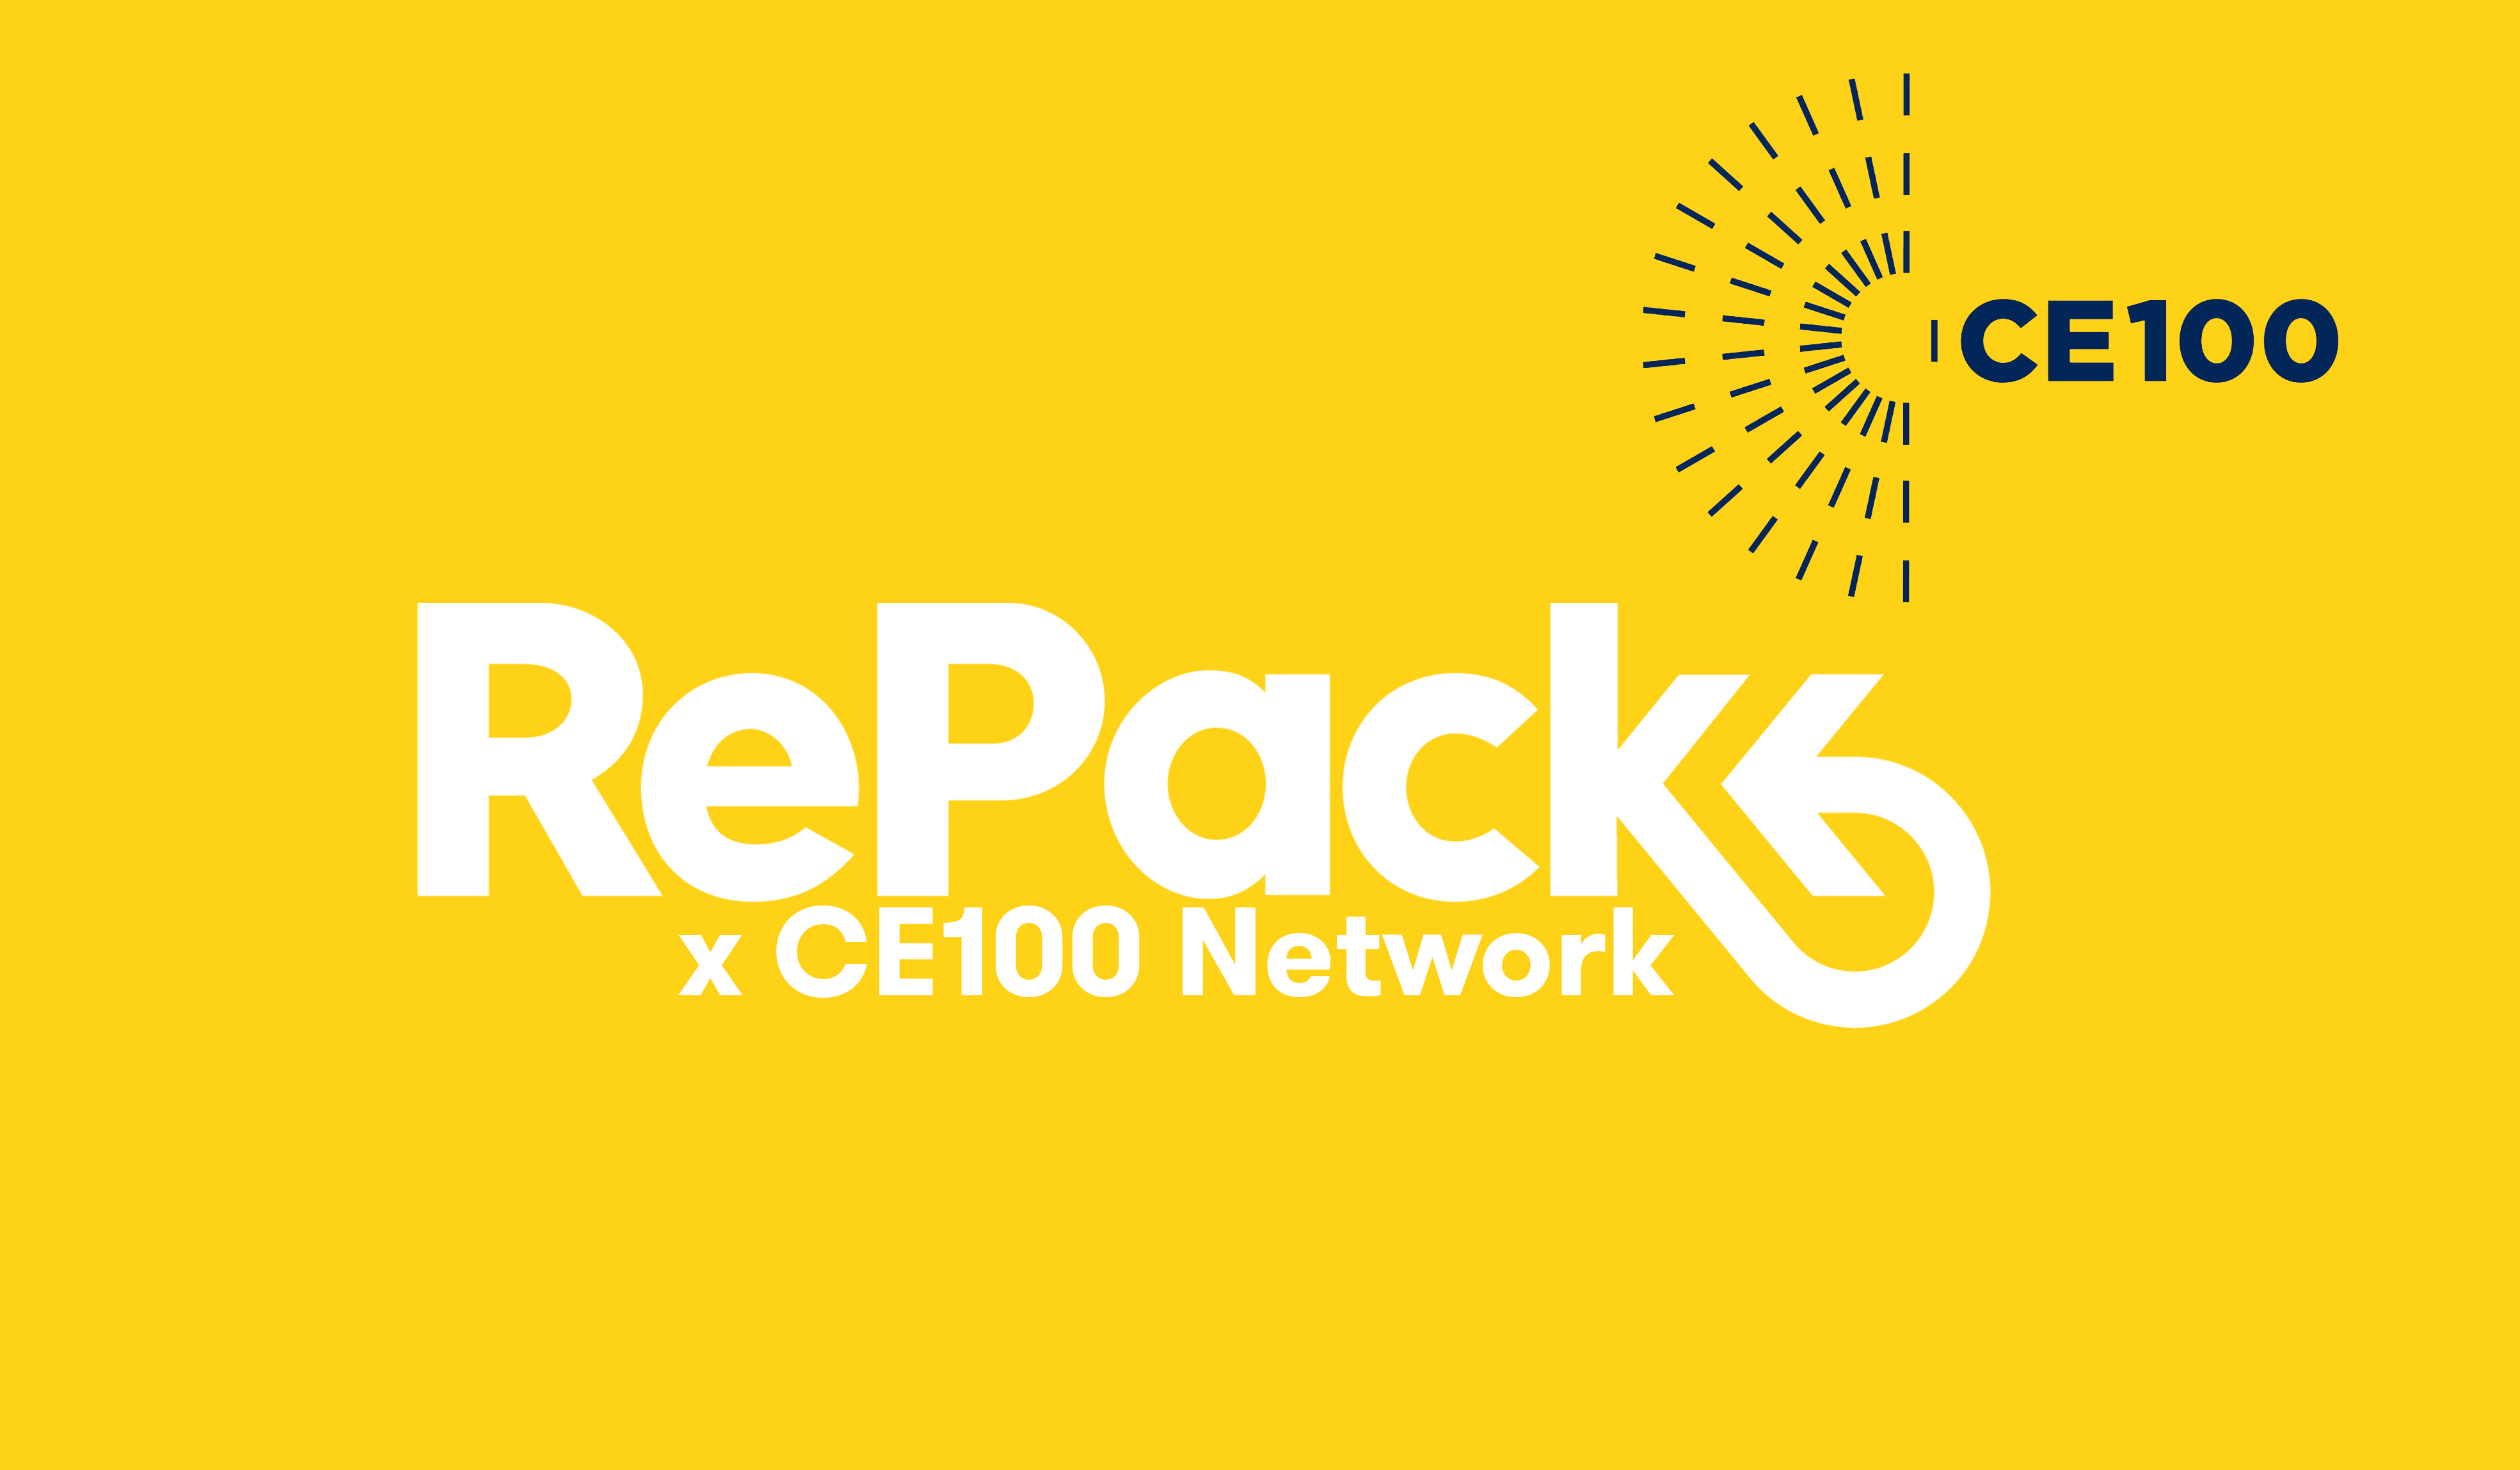 ce100 network